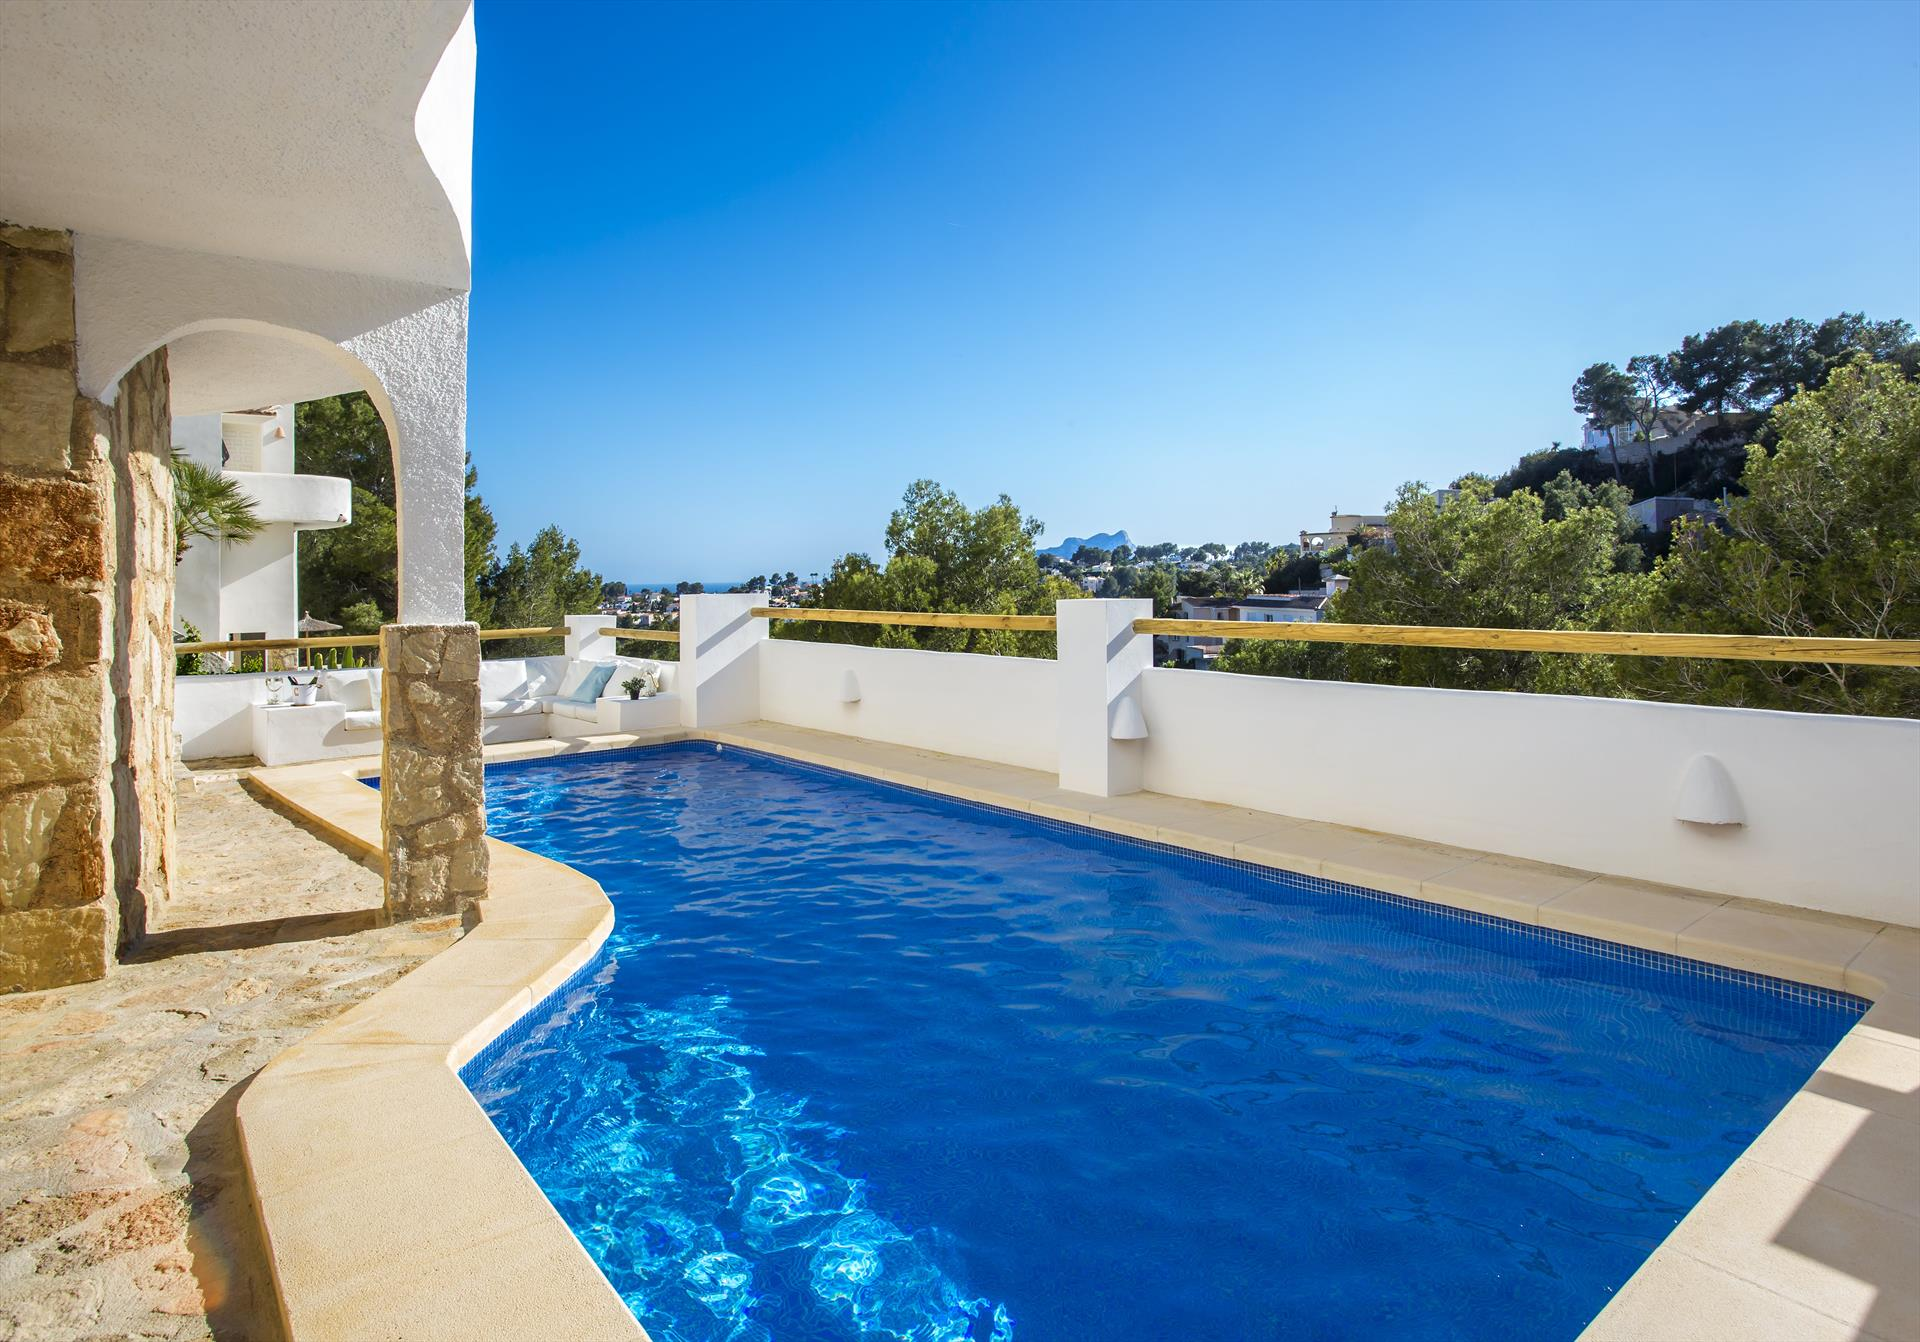 La Vida, Comfortable villa in Benissa, on the Costa Blanca, Spain  with private pool for 8 persons.....